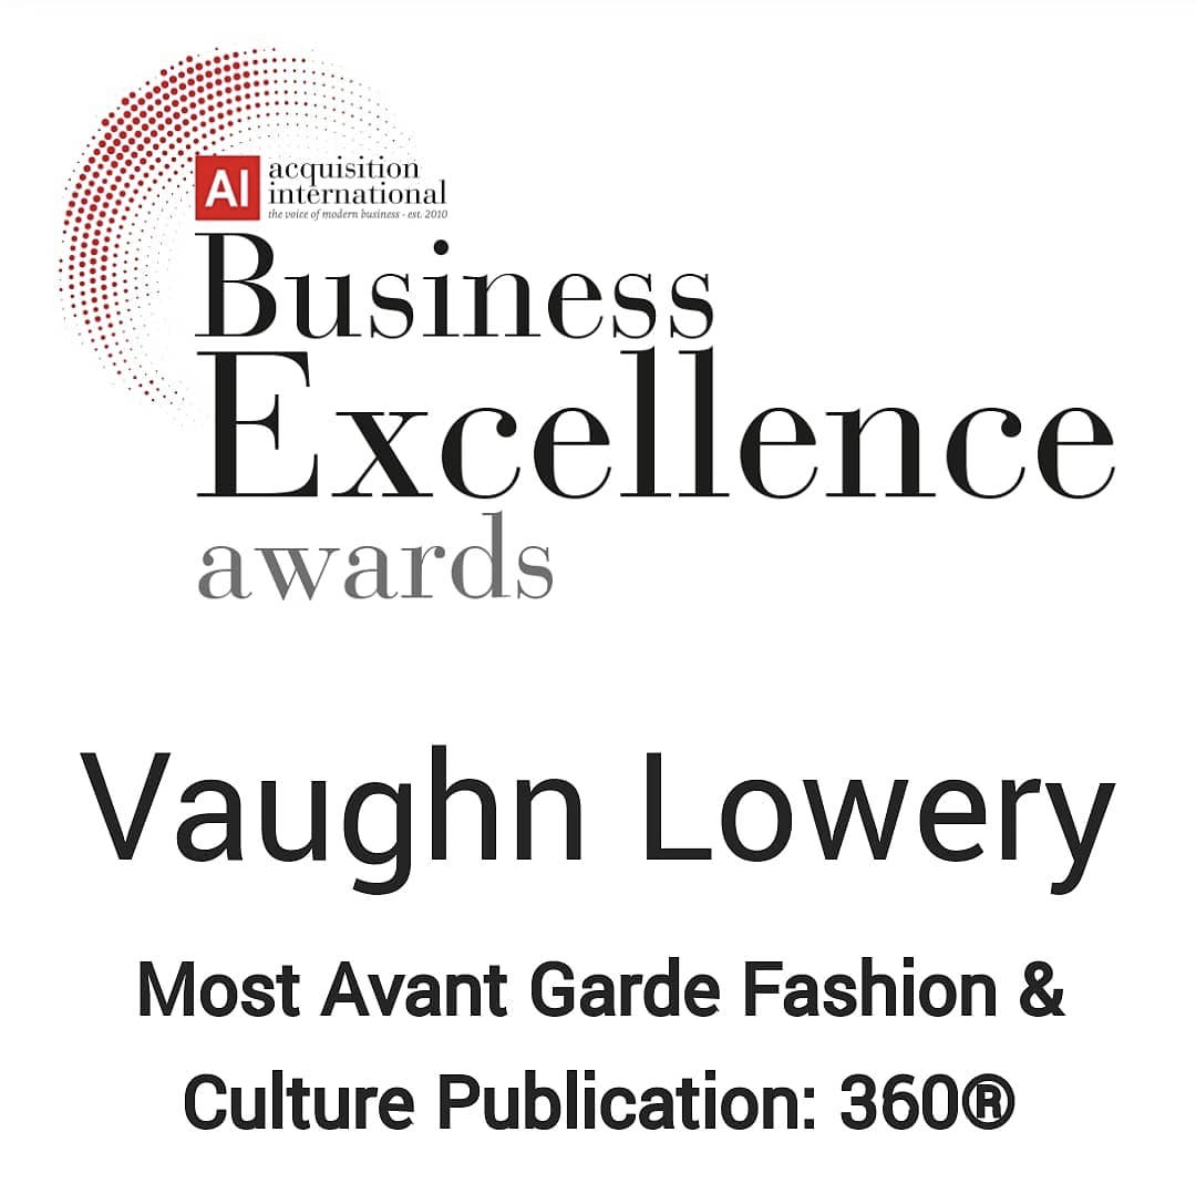 360 Magazine, AI Business Excellence awards, Vaughn Lowery